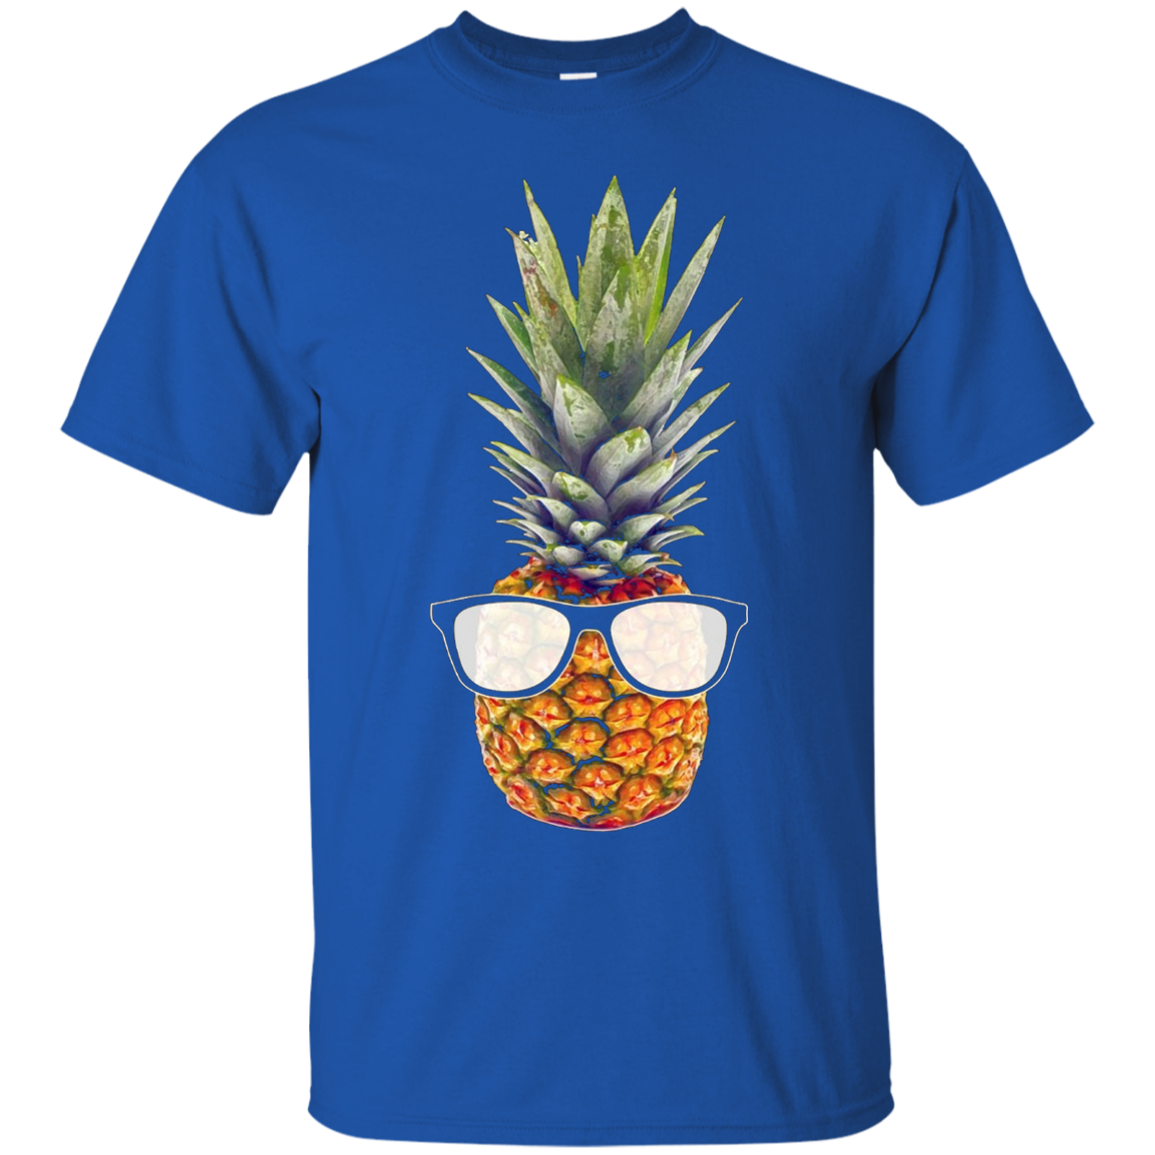 Cool Pineapple Graphic T-Shirt with Black Sunglasses Black